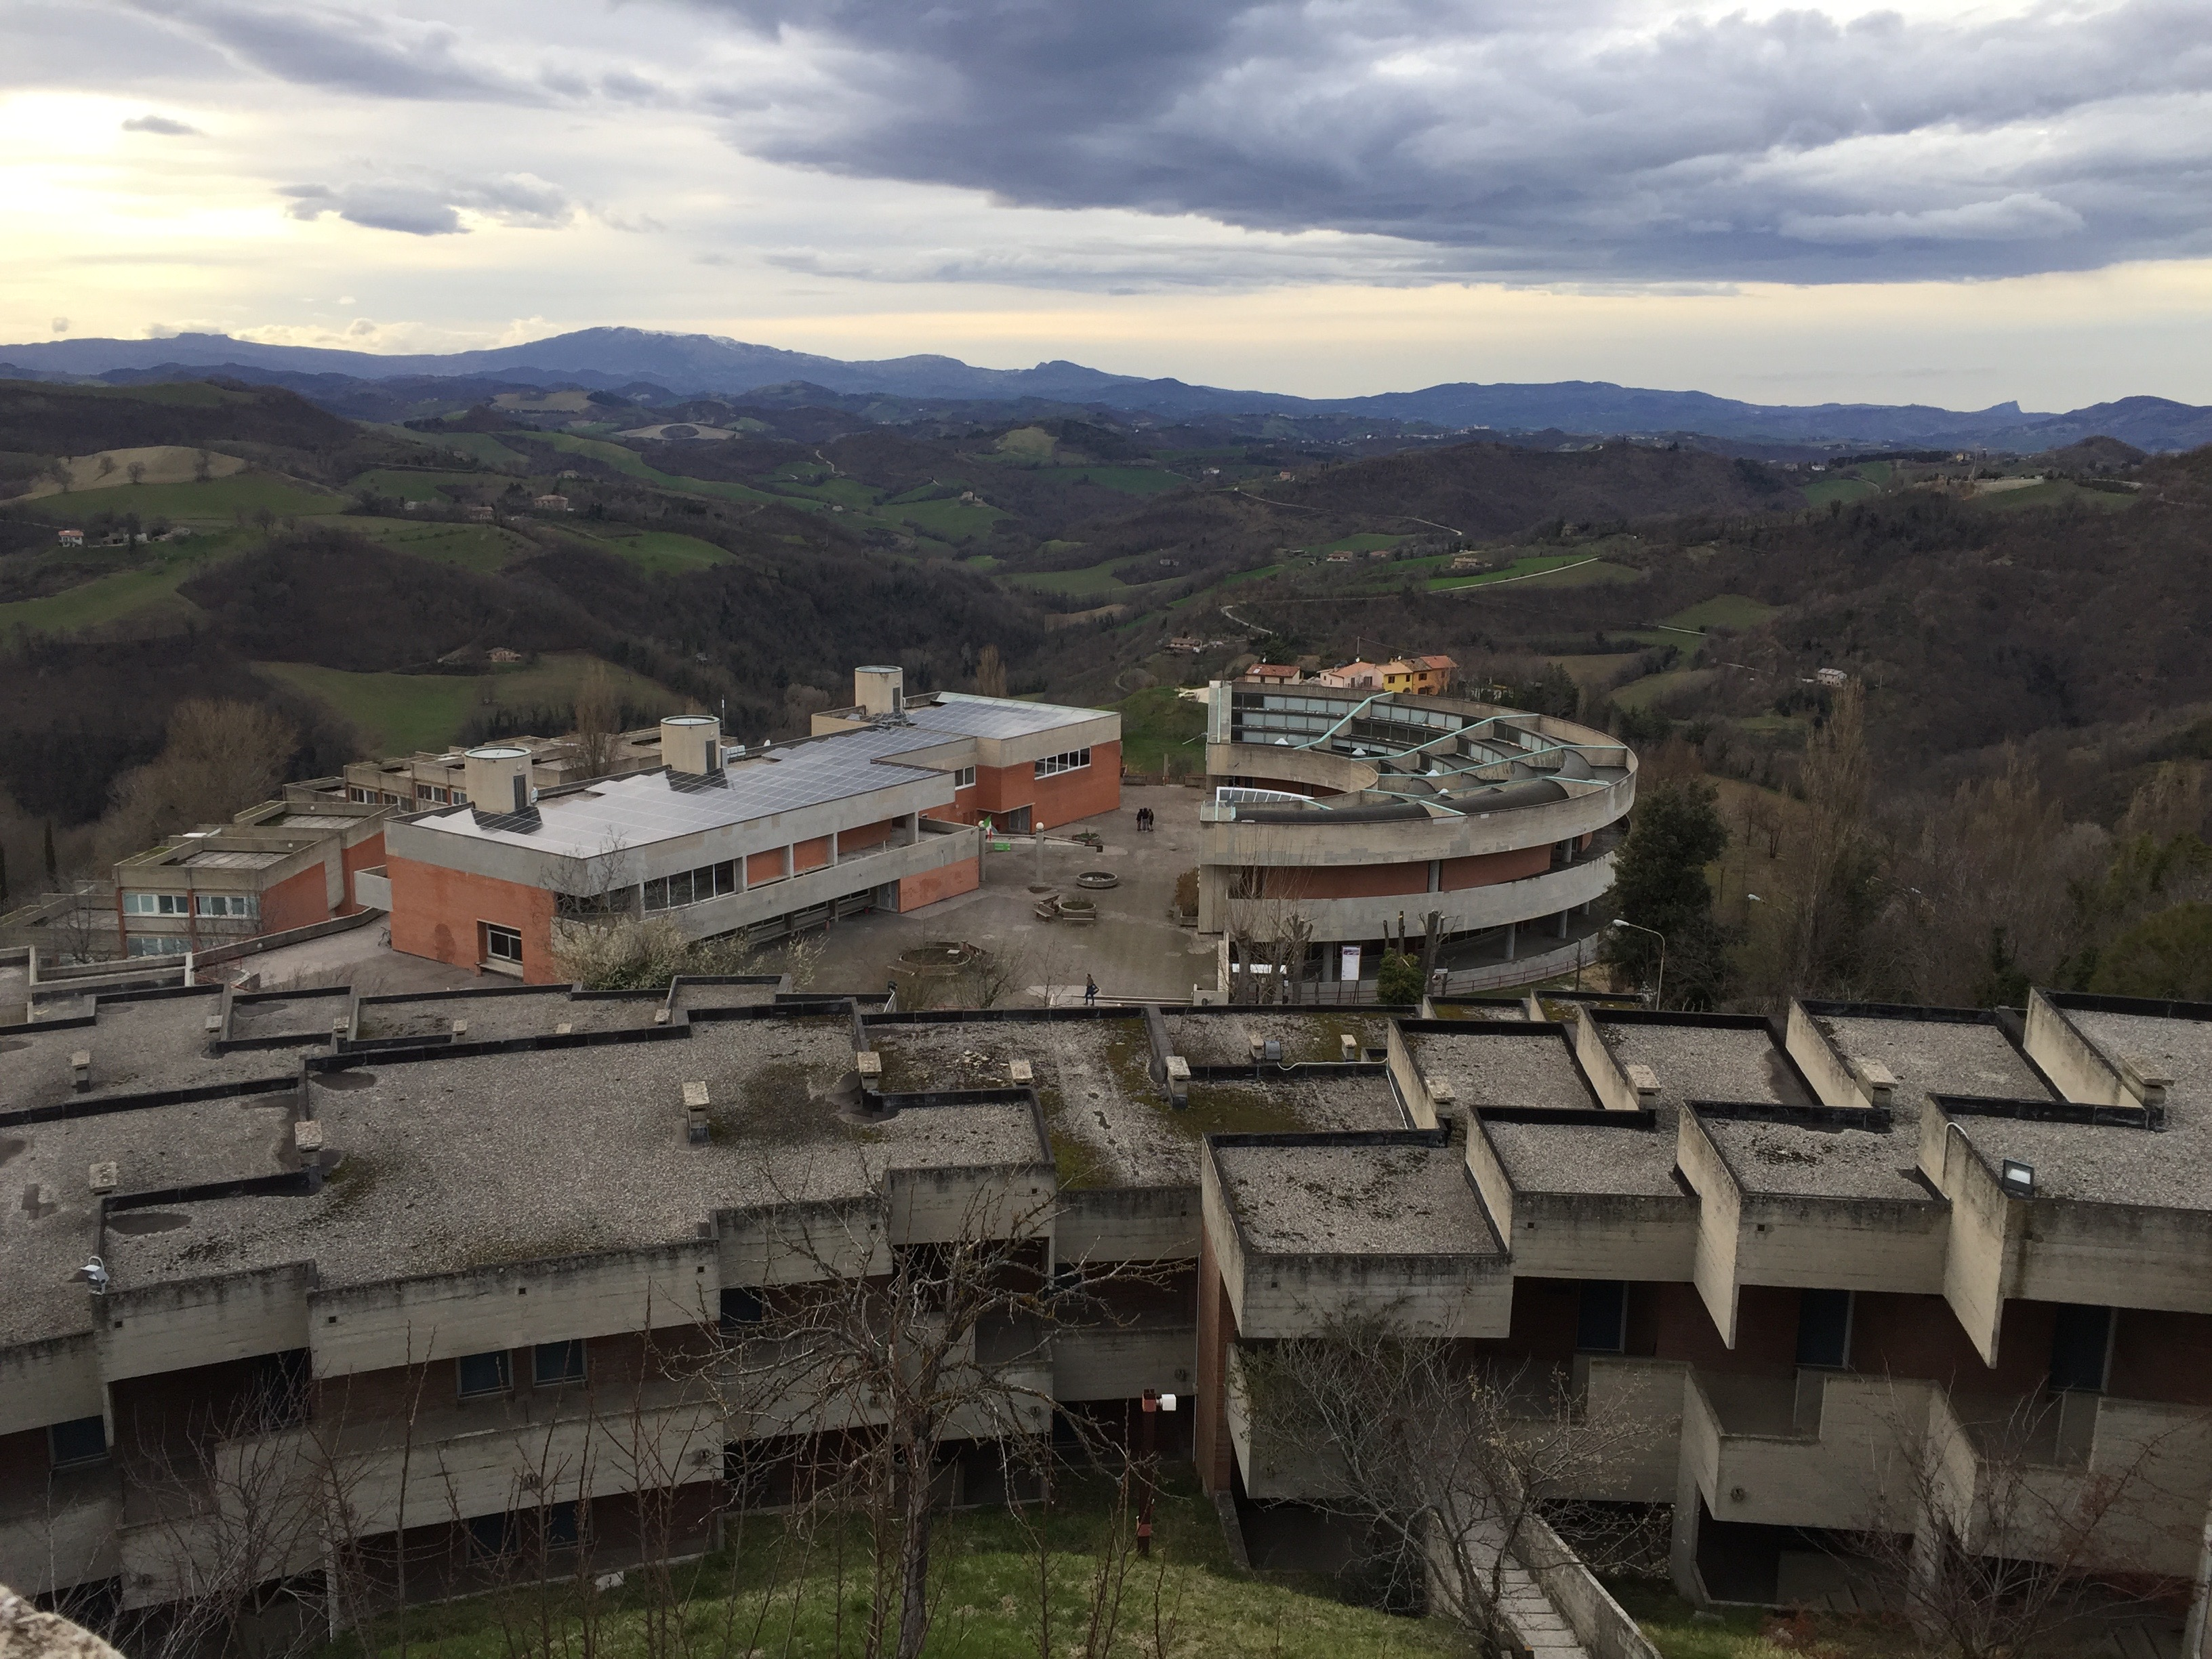 The view from Il Colle demonstrates the dorms merging into the landscape. Photo by Bridget Hepworth